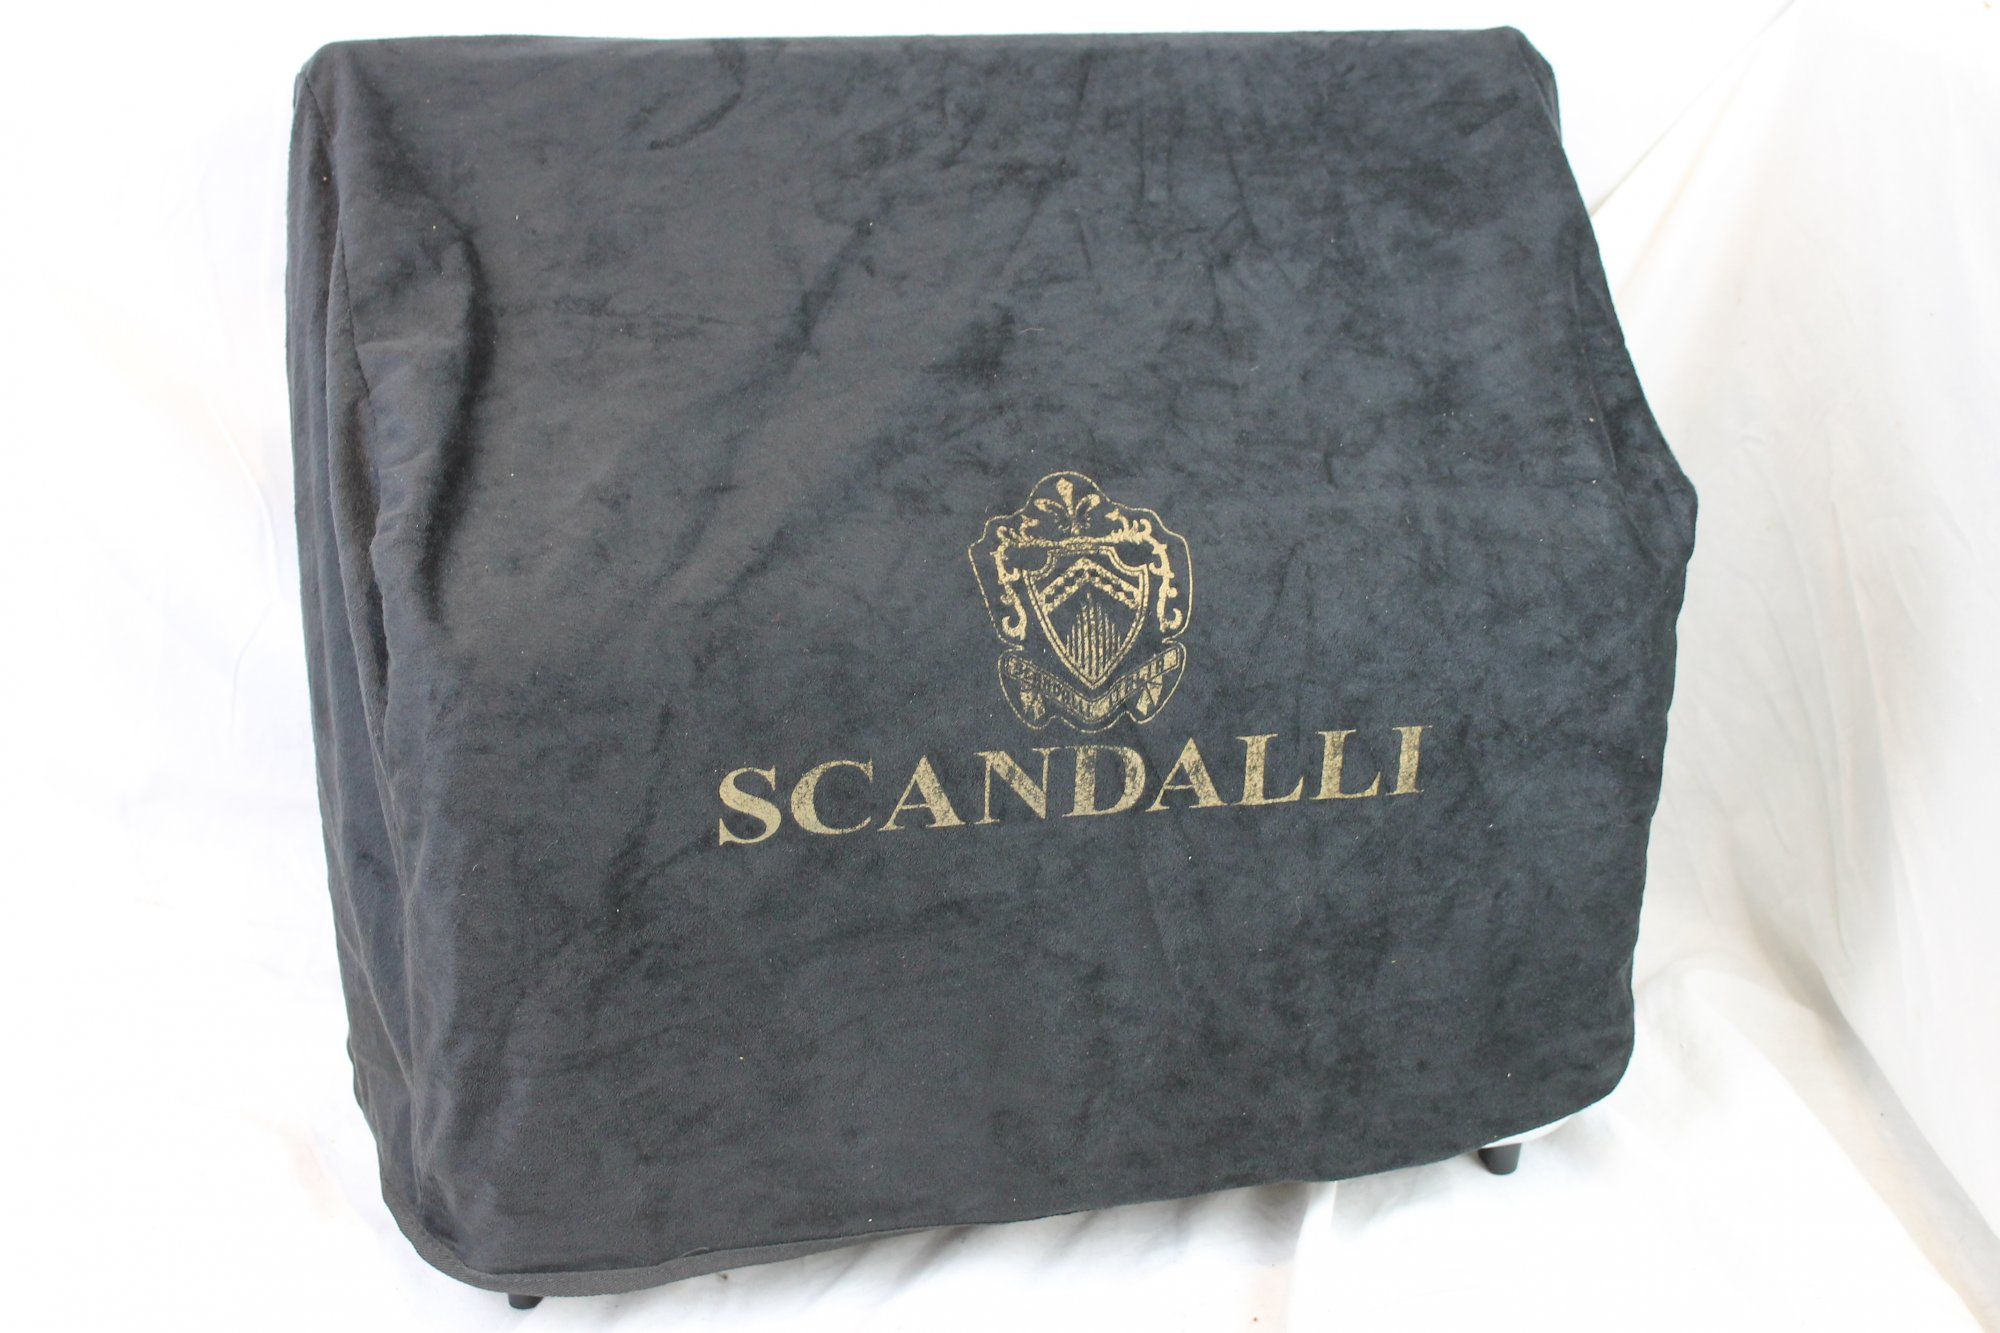 NEW Scandalli Velour Dust Cover for Accordion - Large 21.5 x 17.5 x 9